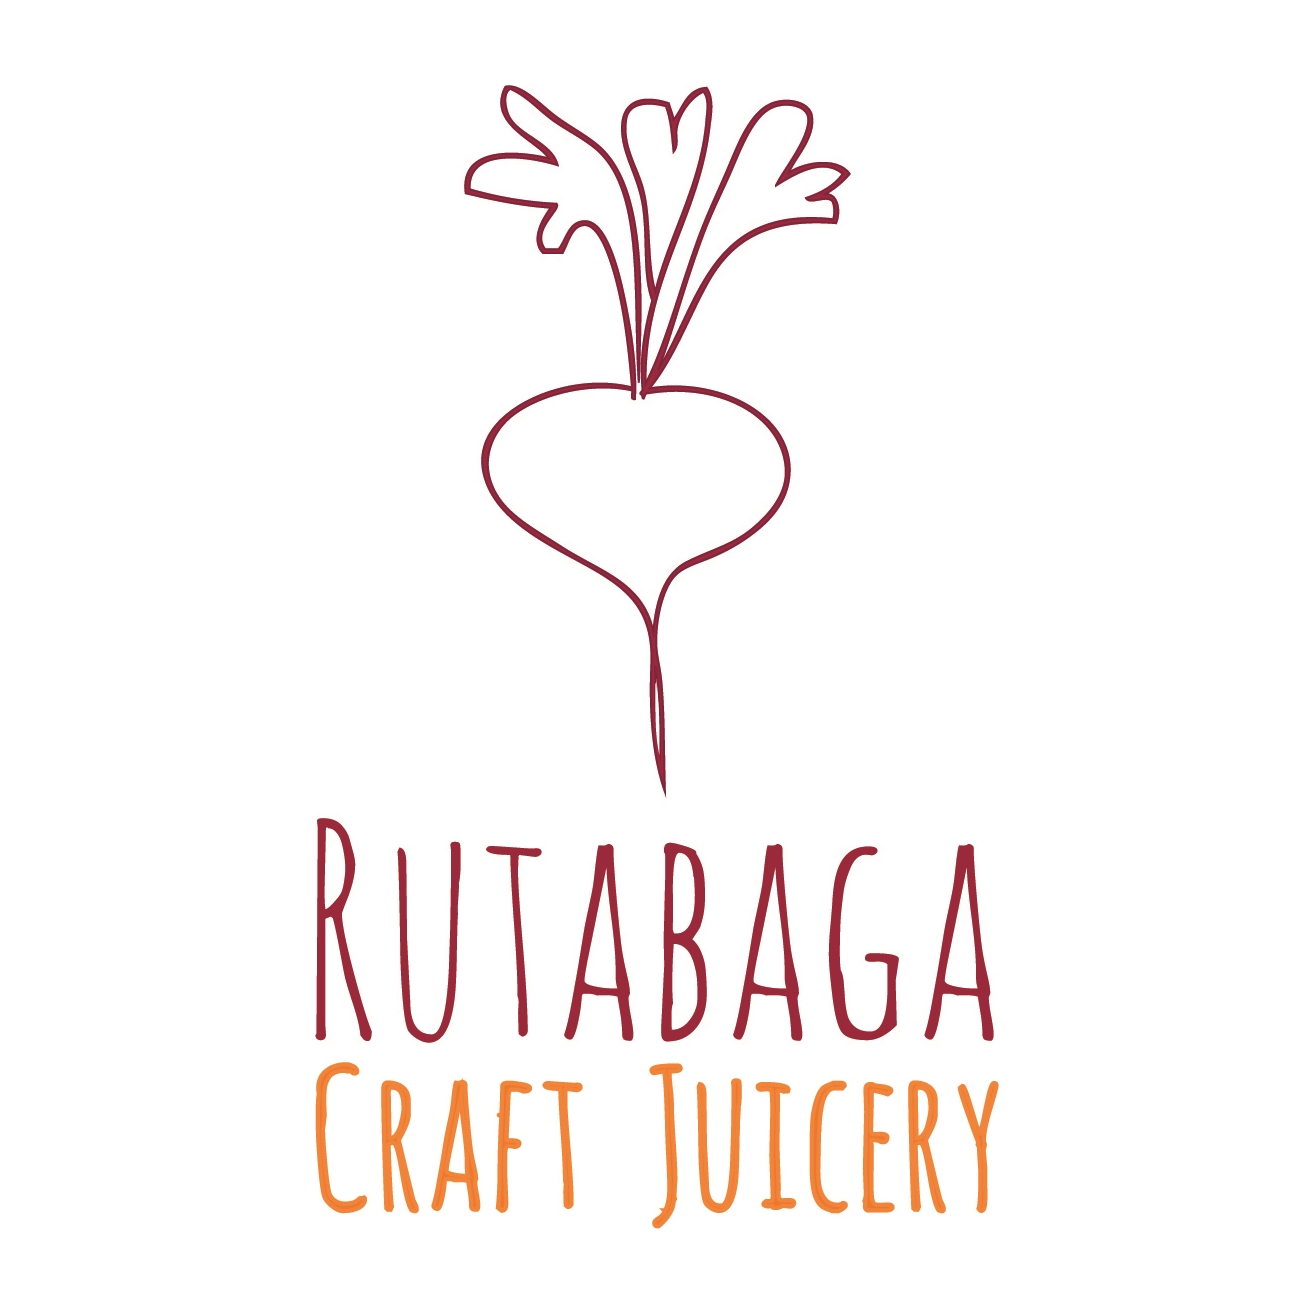 Rutabaga Craft Juicery: Annapolis Juice Bar